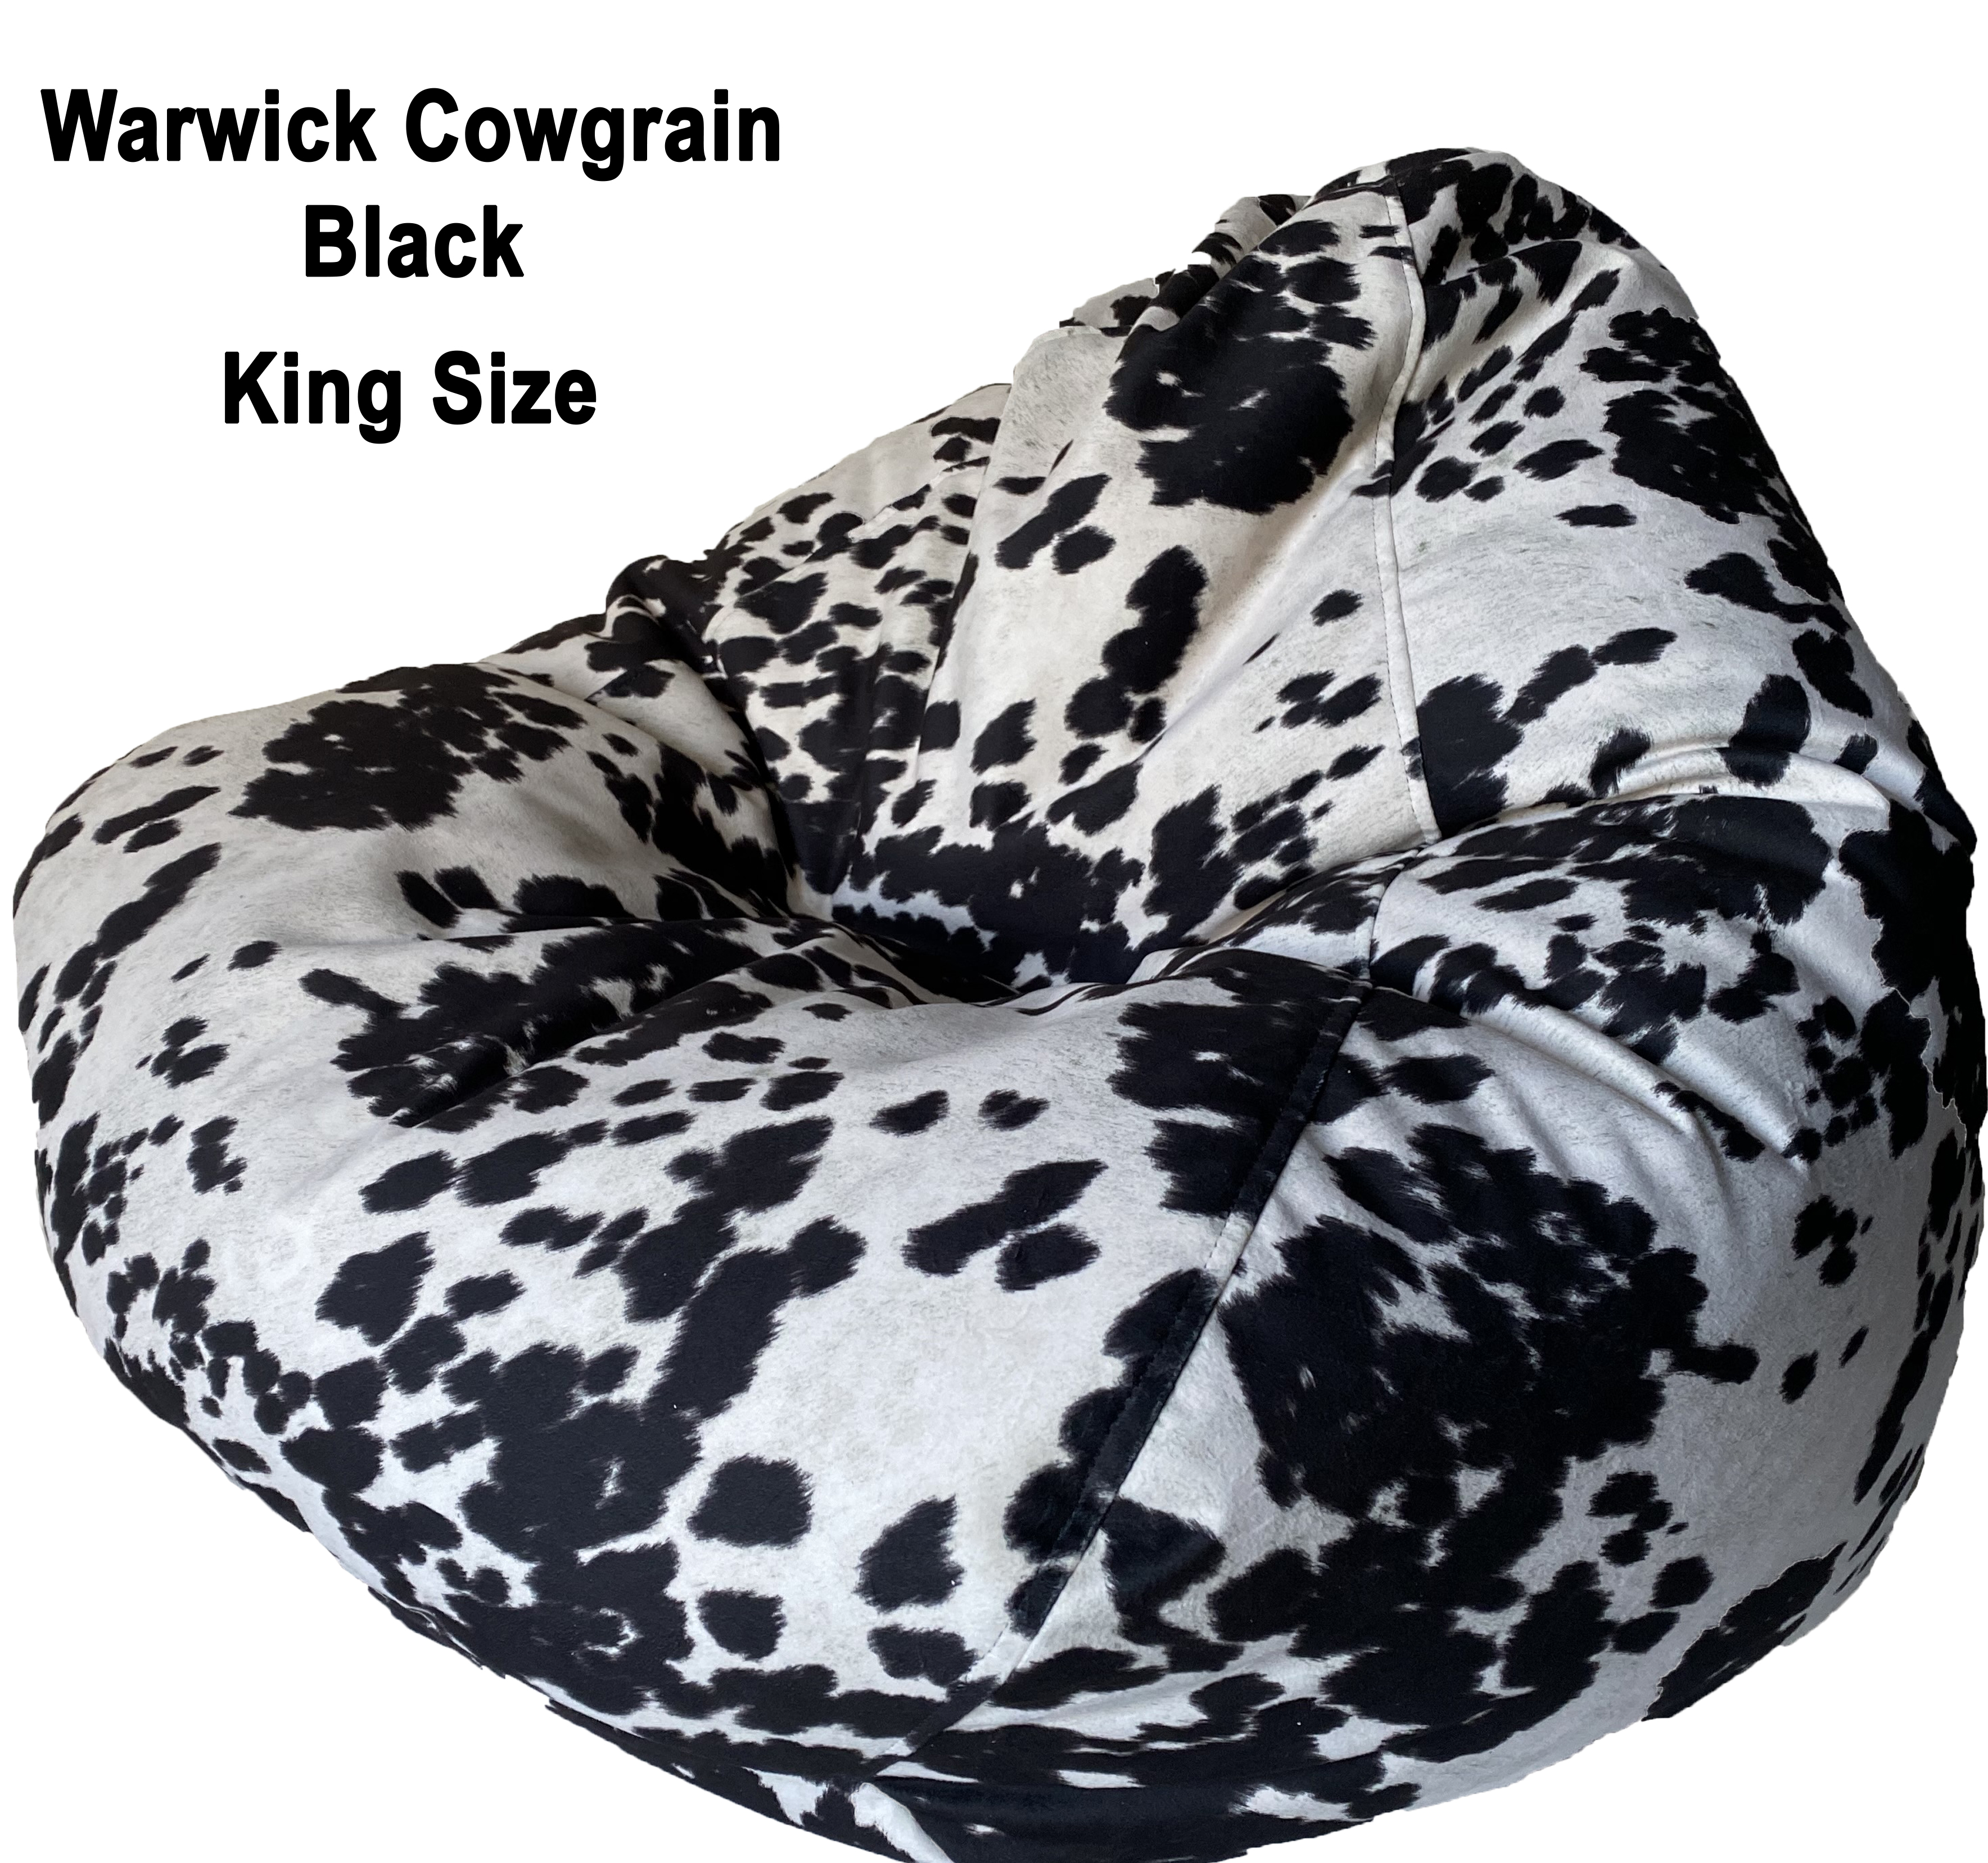 Cowhide King Bean Bag in black